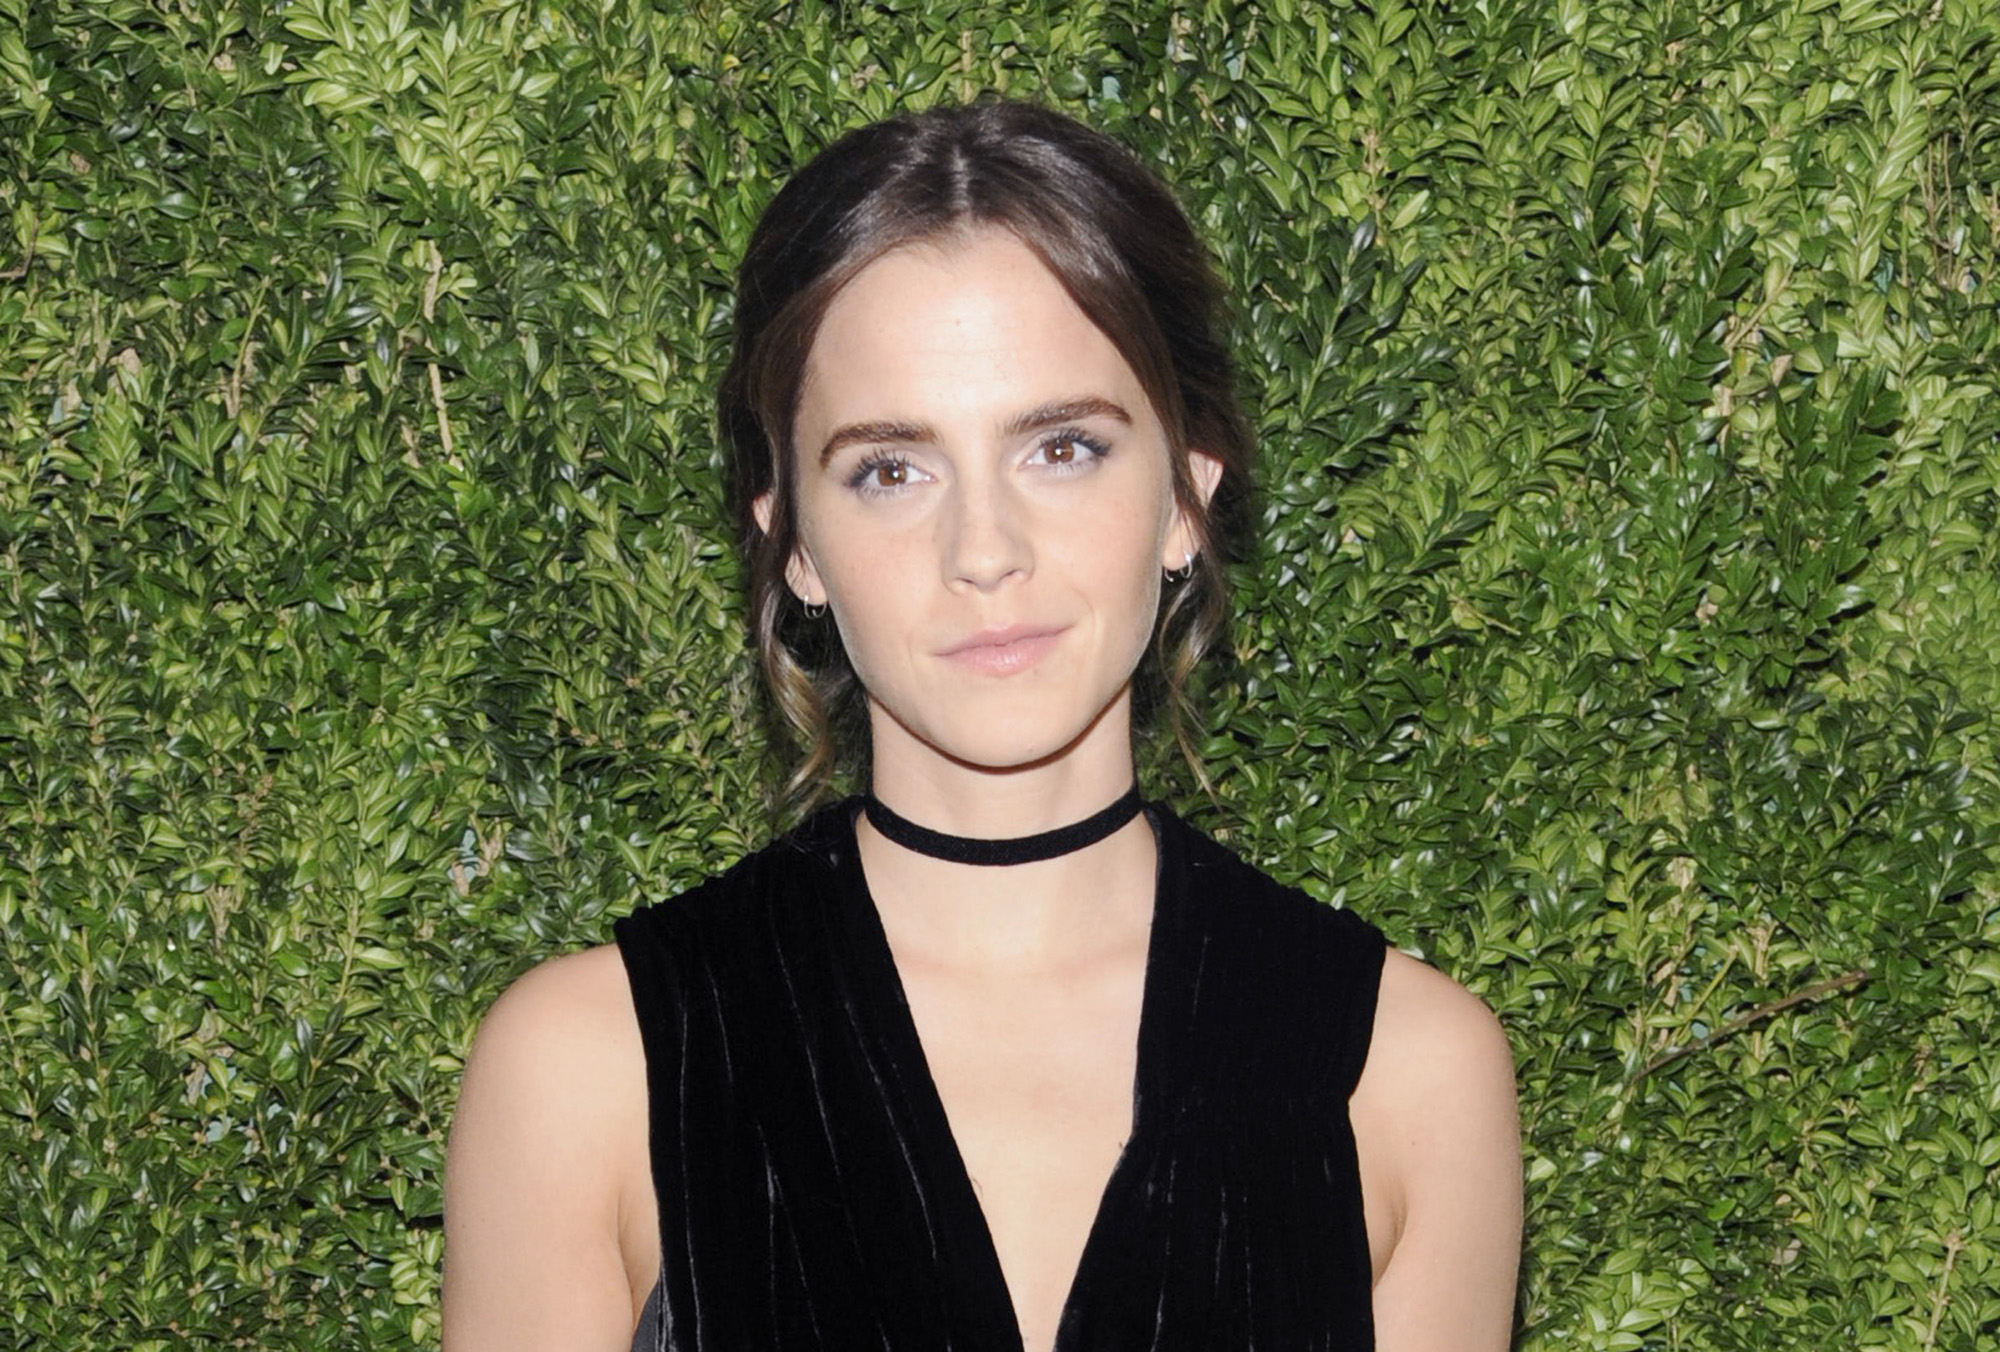 Emma Watson attends the 2016 Museum Of Modern Art Film Benefit on November 15, 2016 in New York City.  (Photo by Rabbani and Solimene Photography/Getty Images)